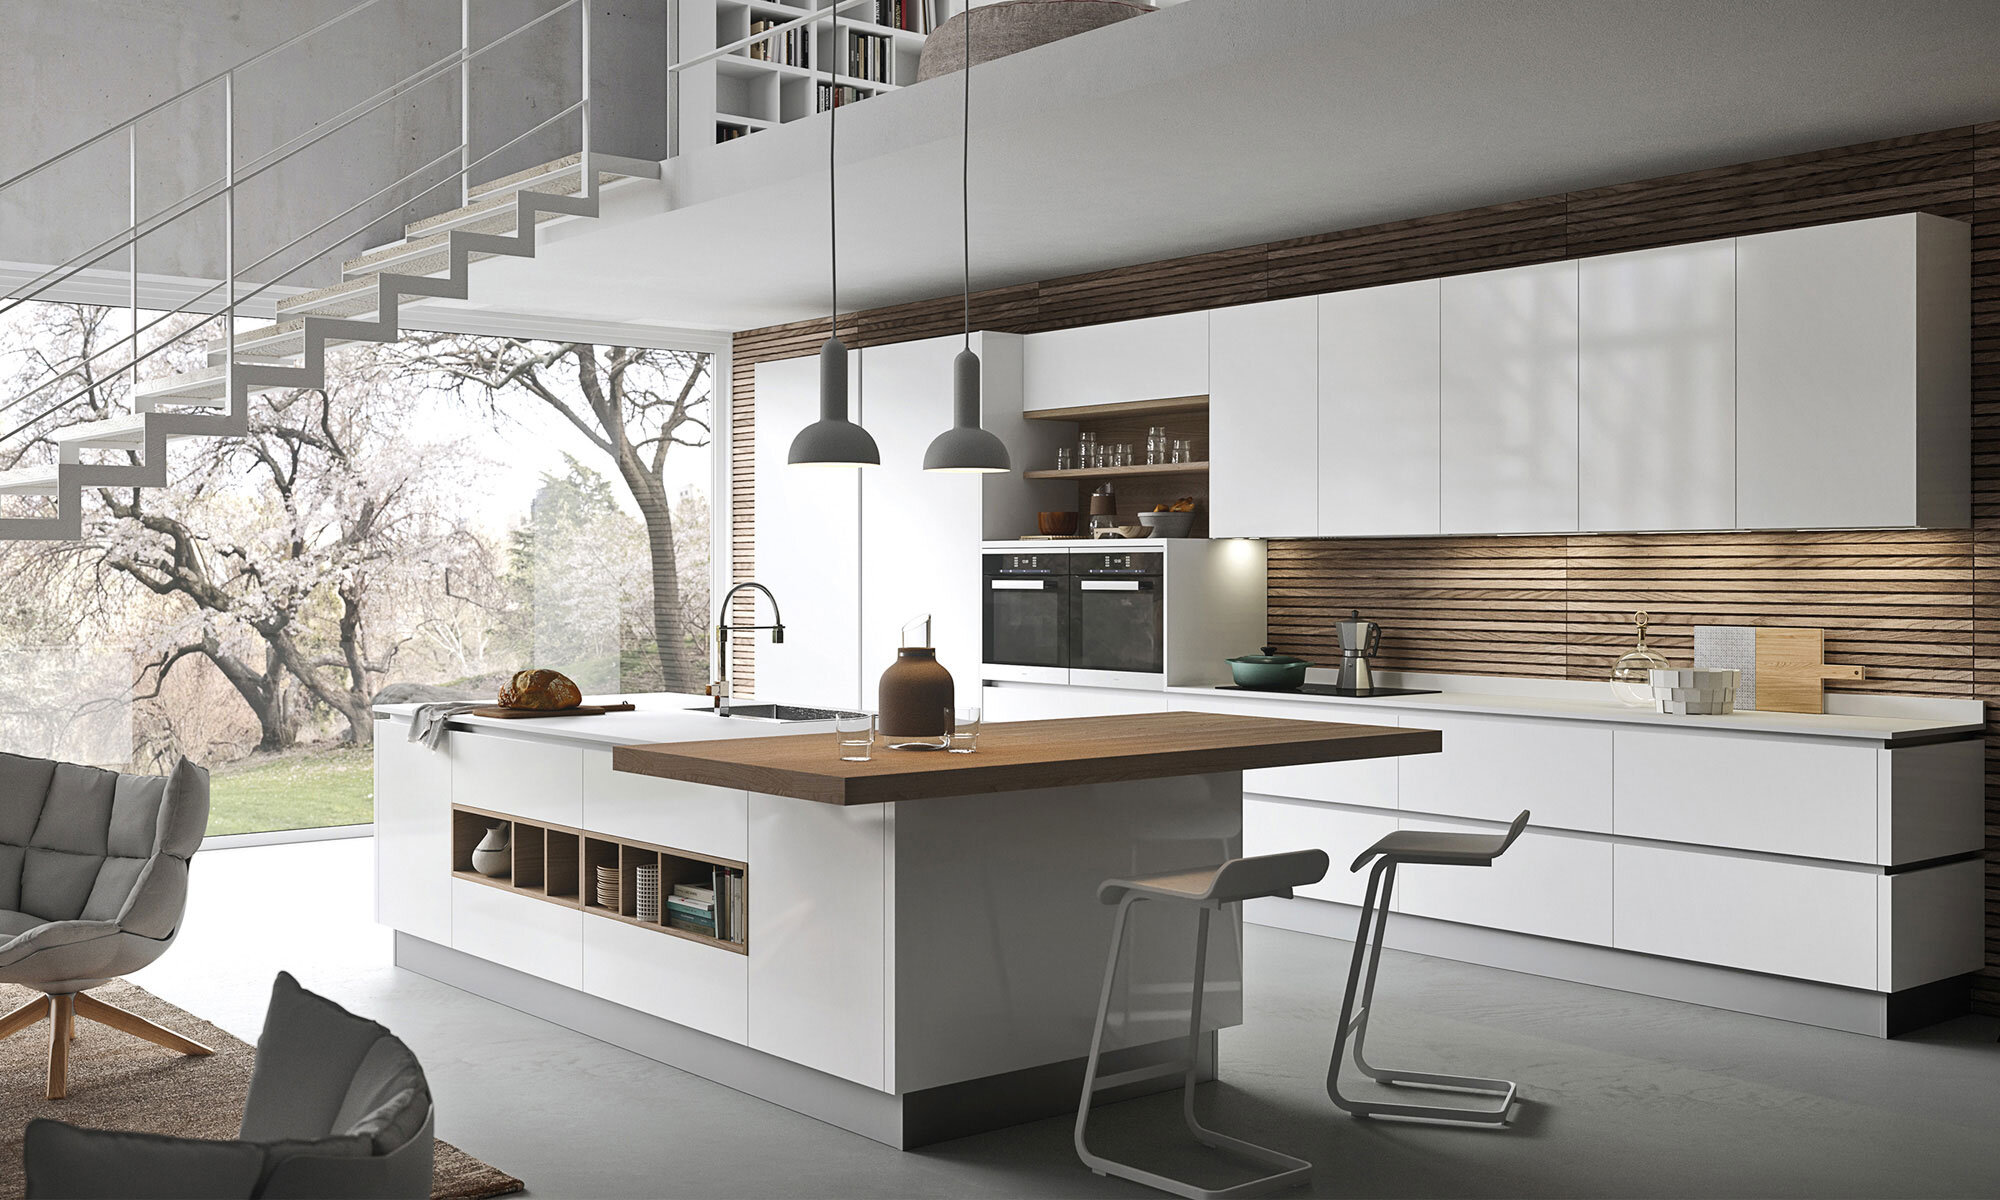 Modern Kitchen And Bath Showrooms Ny Irp Designs